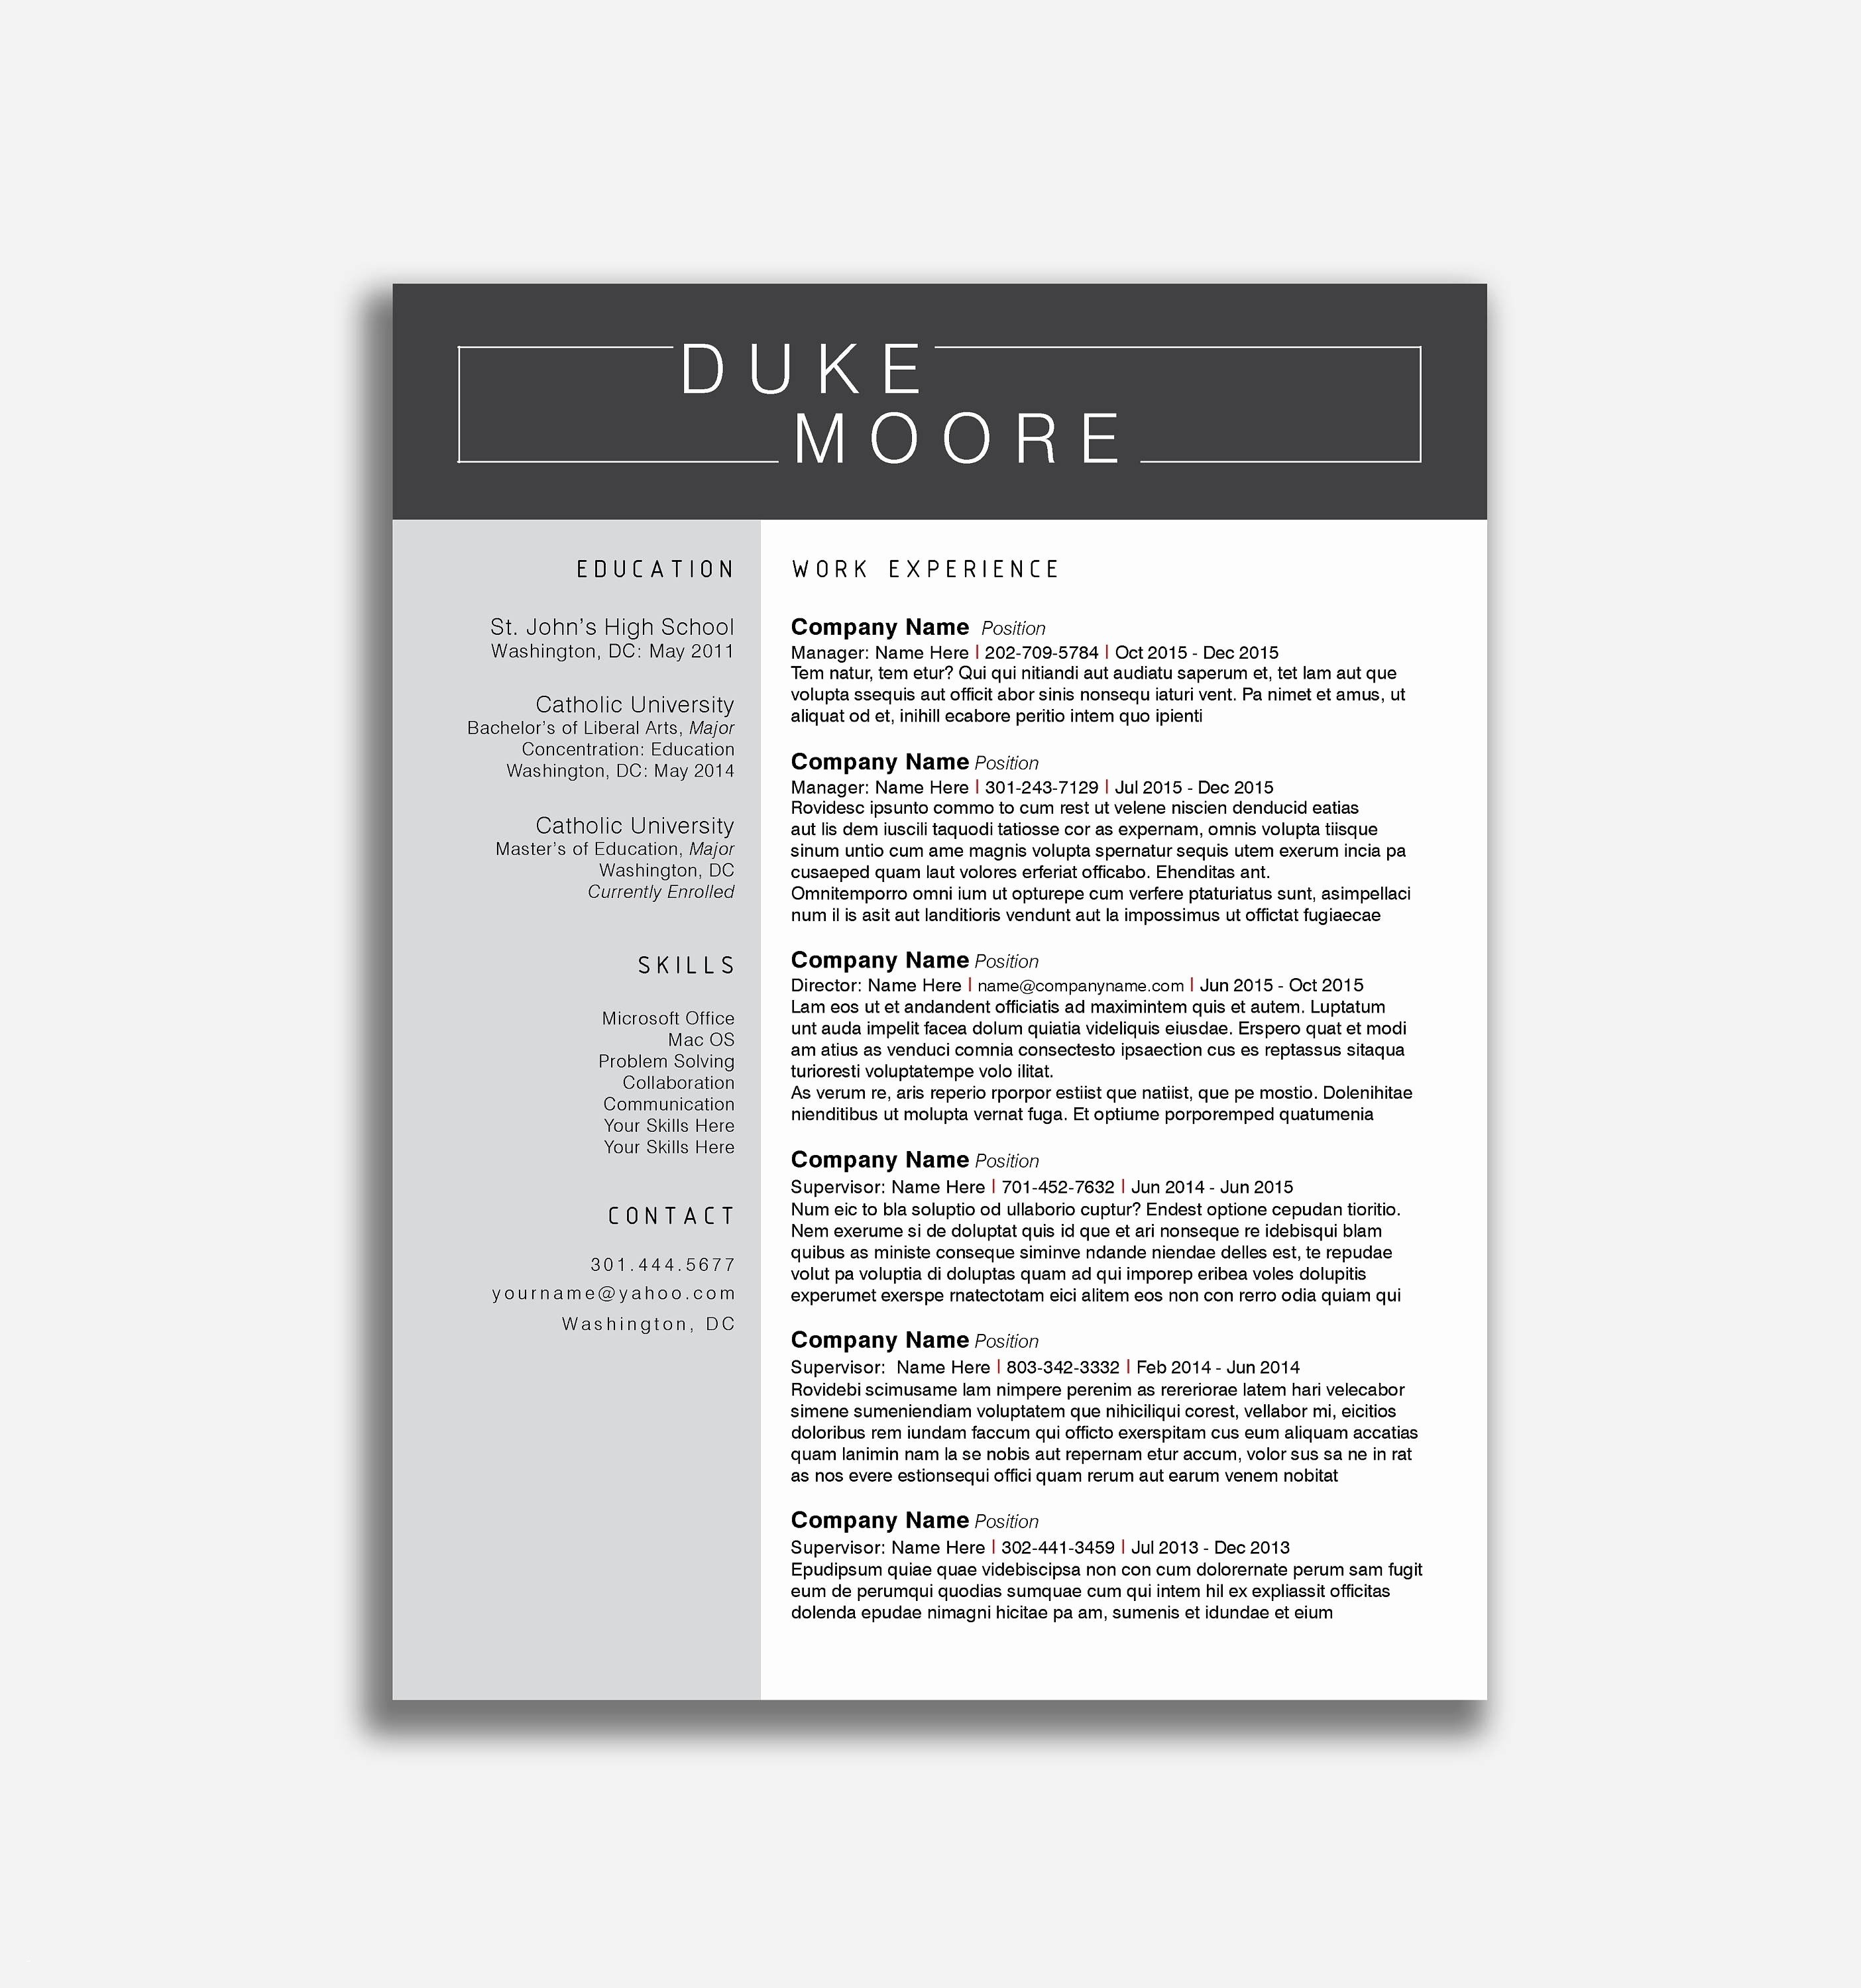 Military Resume Template Microsoft Word - Microsoft Word Resume Template 2007 Beautiful Resume Template for